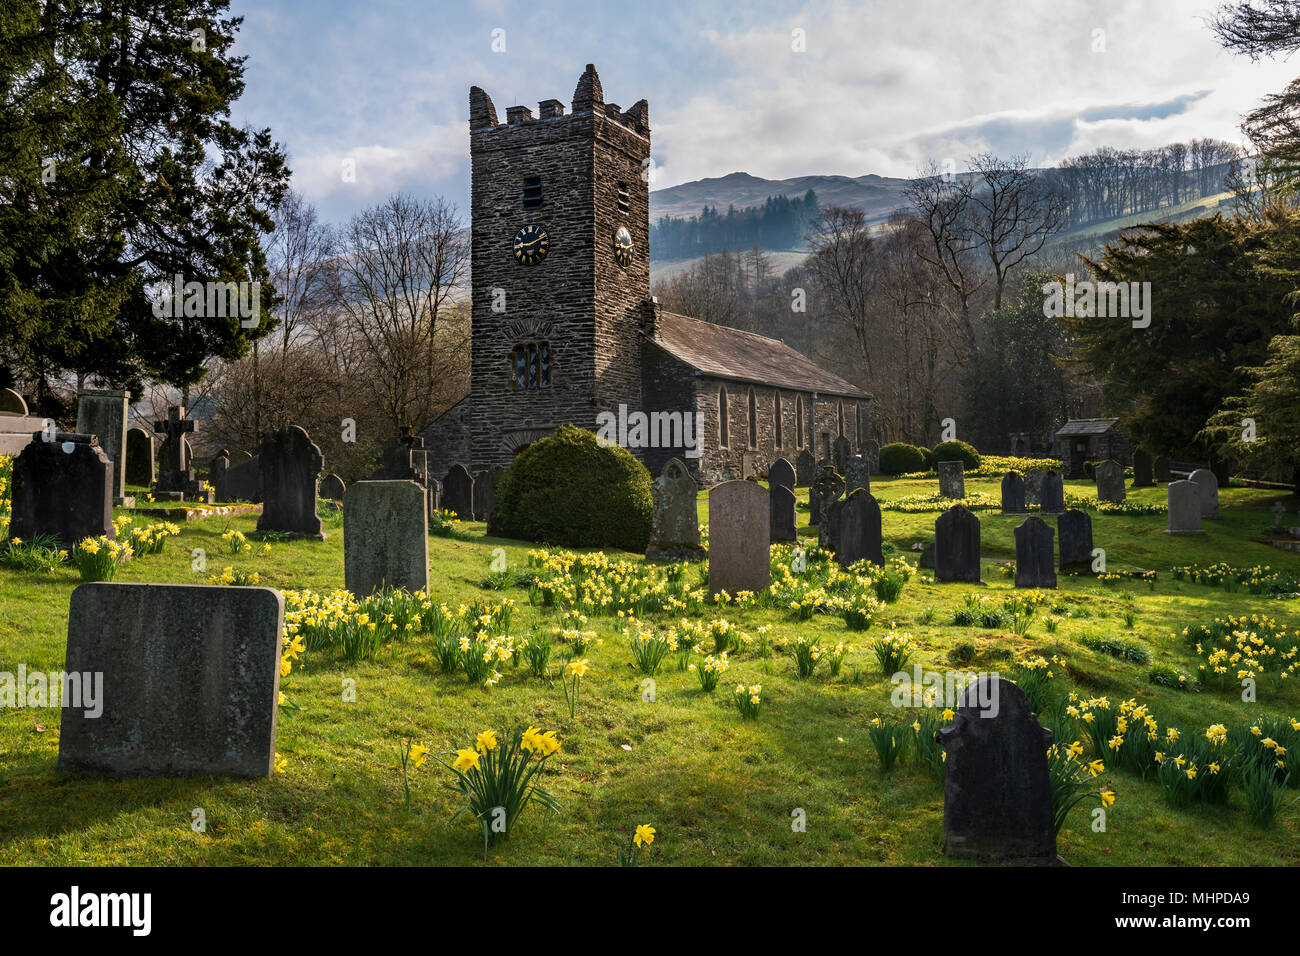 Troutbeck church surrounded by Daffodils and mist covered fells - Stock Image